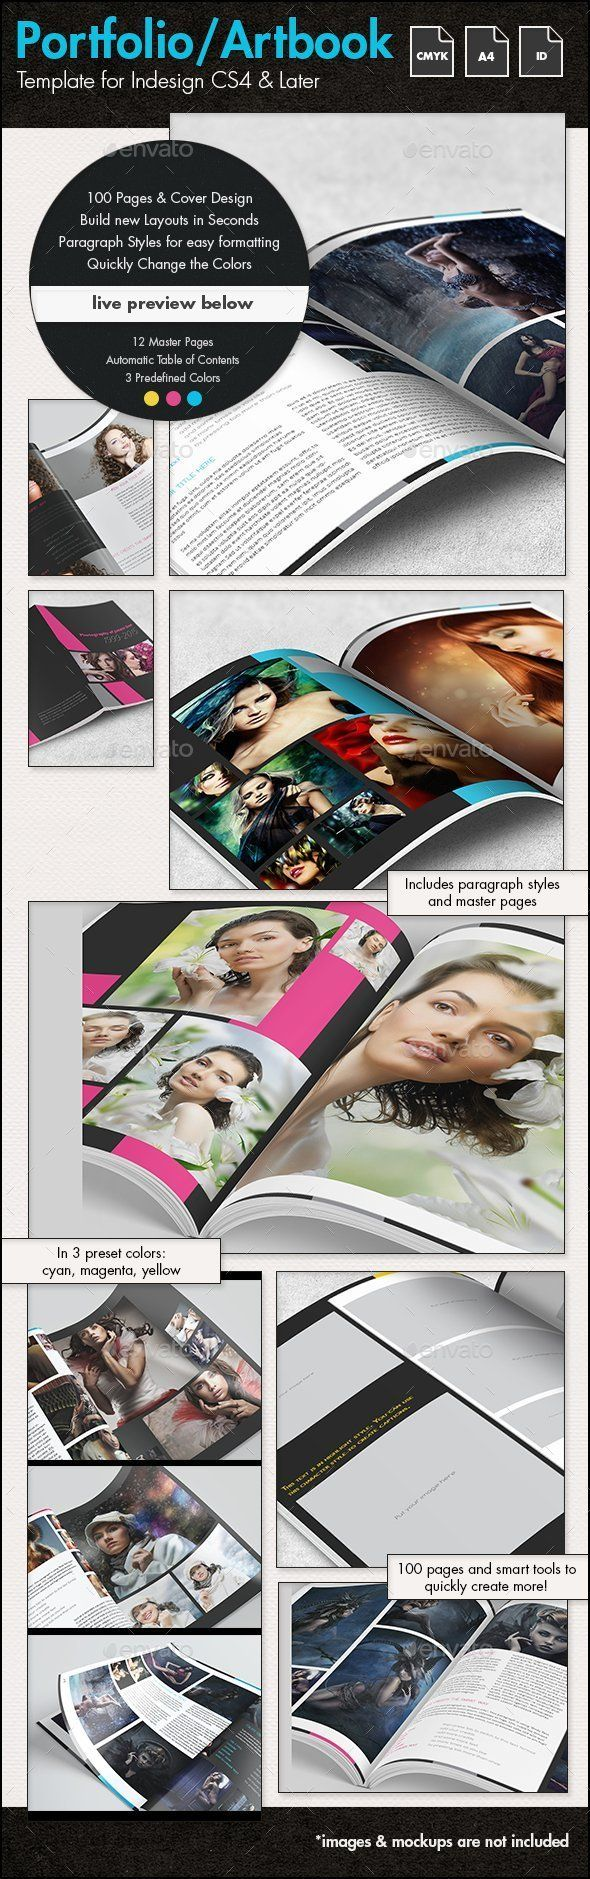 Photofolio & Artbook Template - A4 Portrait